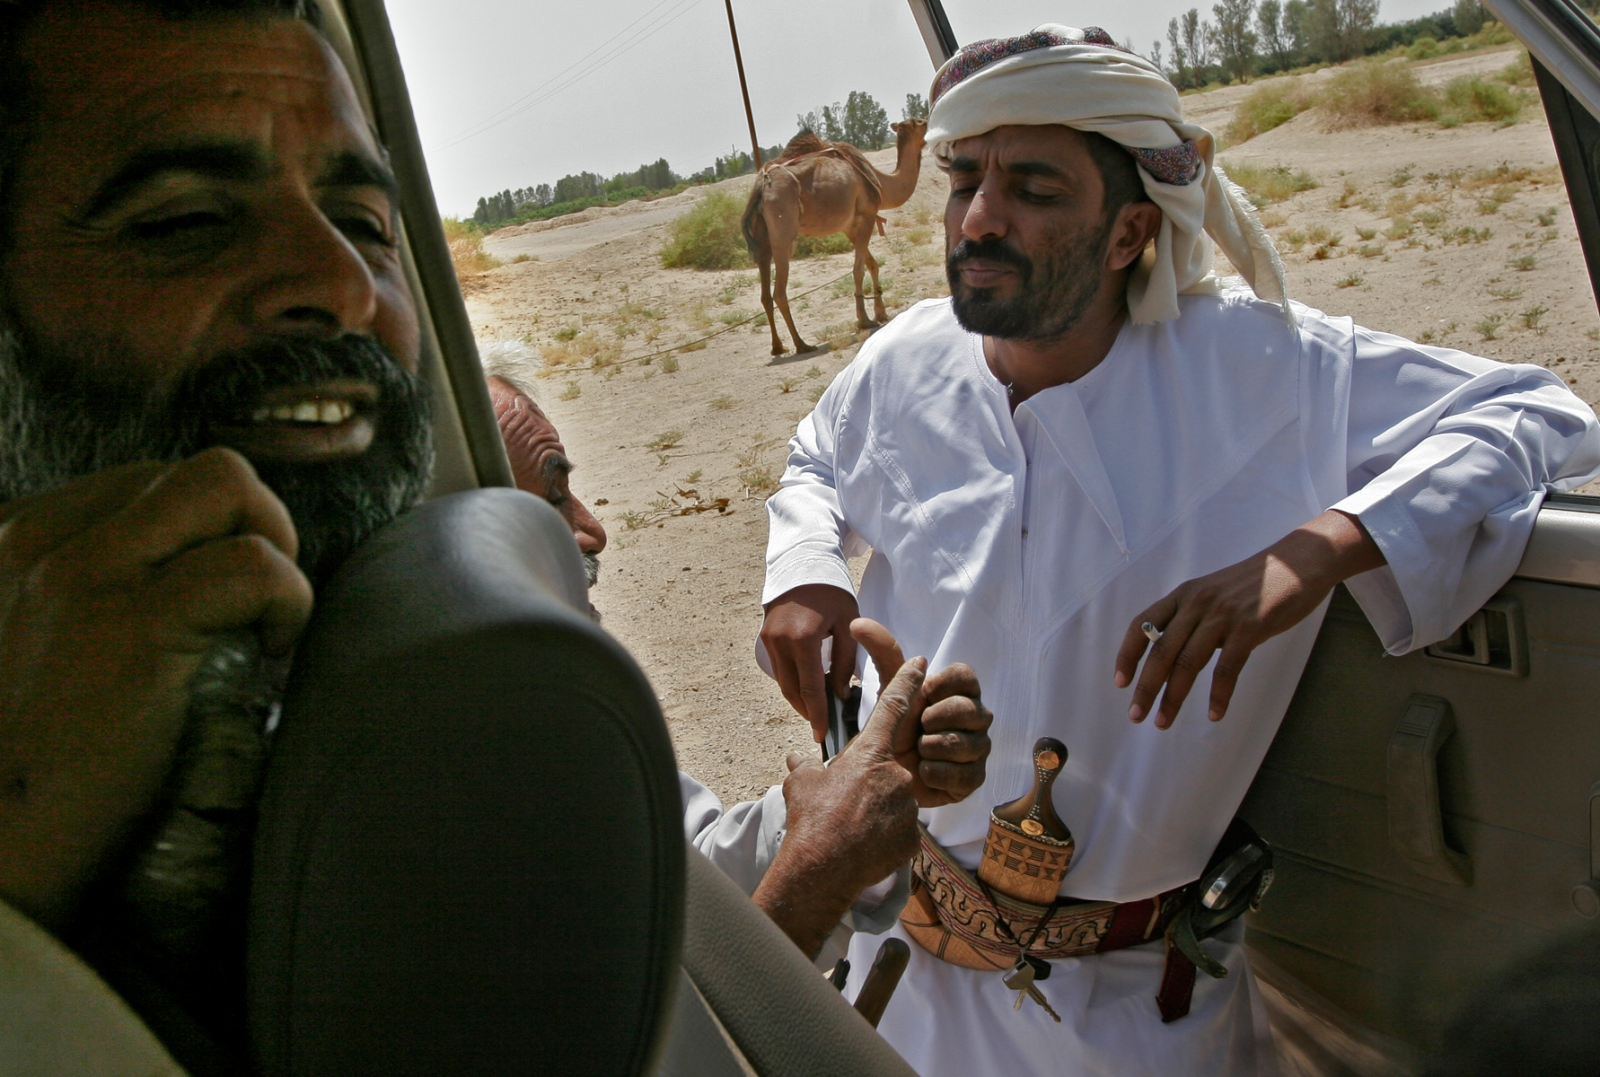 """One of Sheik Rabea's guards listens as a tribal member complains that Rabea should not be hospitable with Americans. One person told him """"the U.S. will do to Yemen what it did to Iraq."""""""